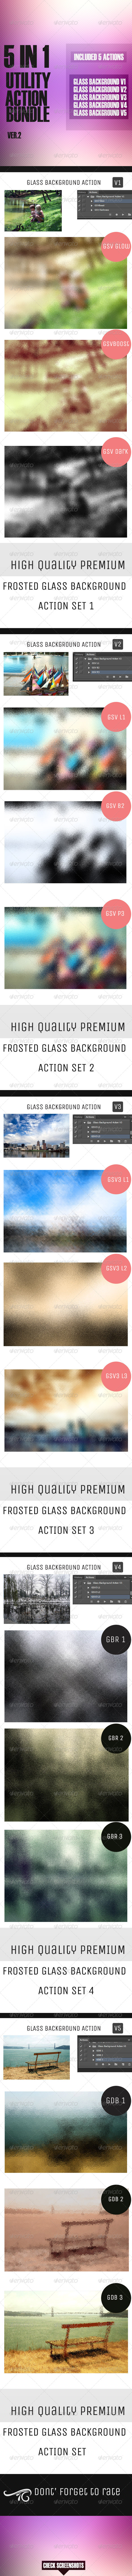 GraphicRiver 5 in 1 Glass Blur Actions Bundle 5326928